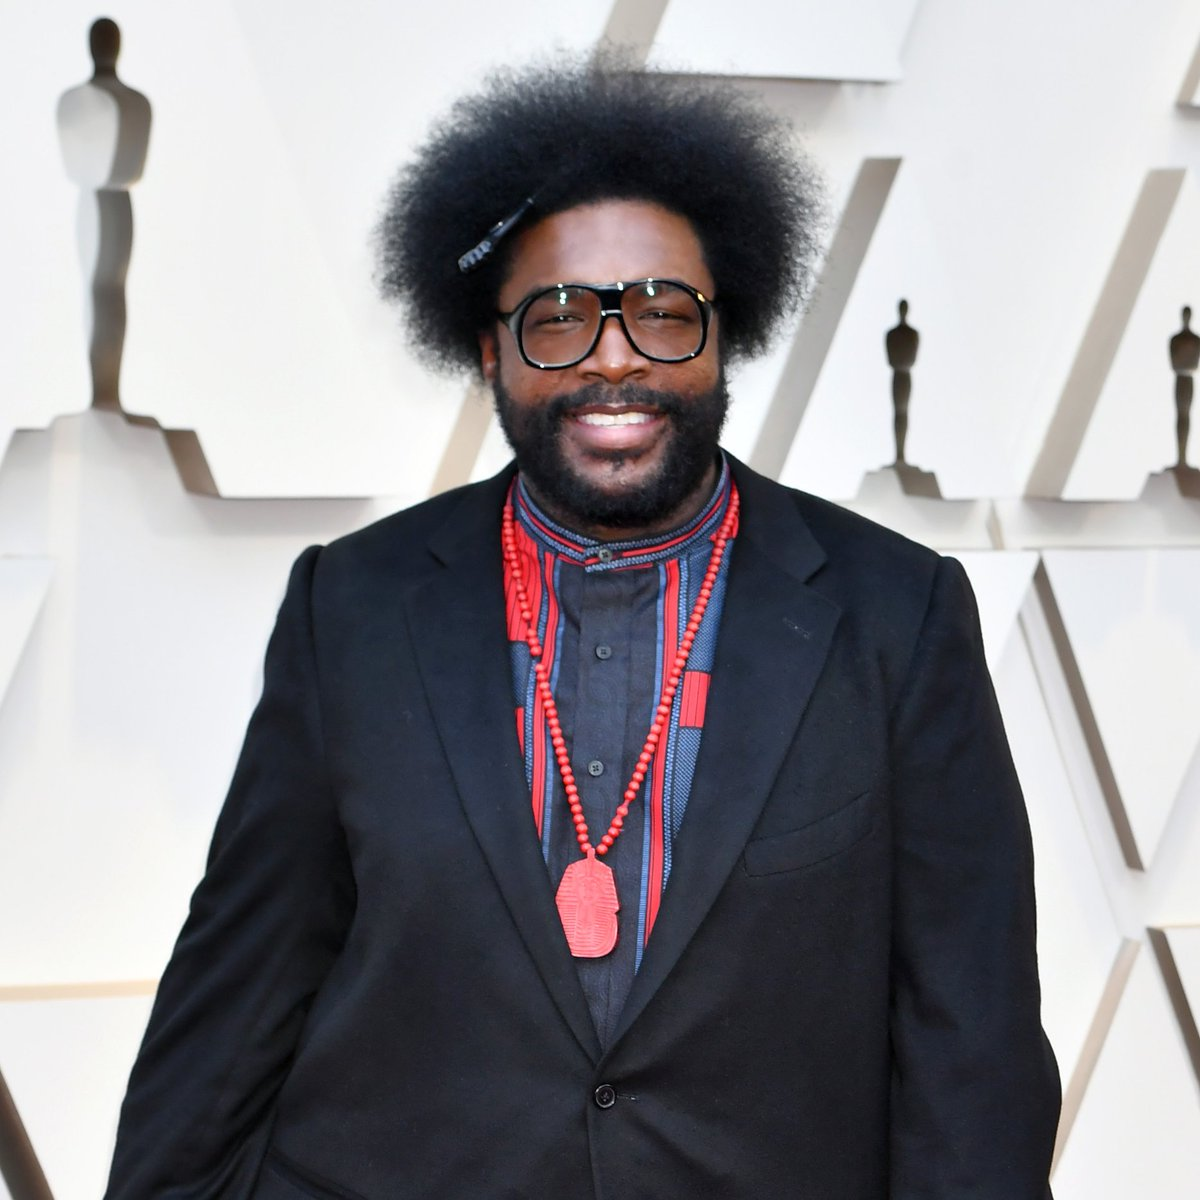 Questlove is gearing up for his new role as the #Oscars official Music Director. 🏆🎧  We caught up with @questlove ahead of the 93rd Academy Awards about his new position, the inspiration behind the music, & much more.  READ: https://t.co/mv1qi5SQds https://t.co/owvmORWAyq